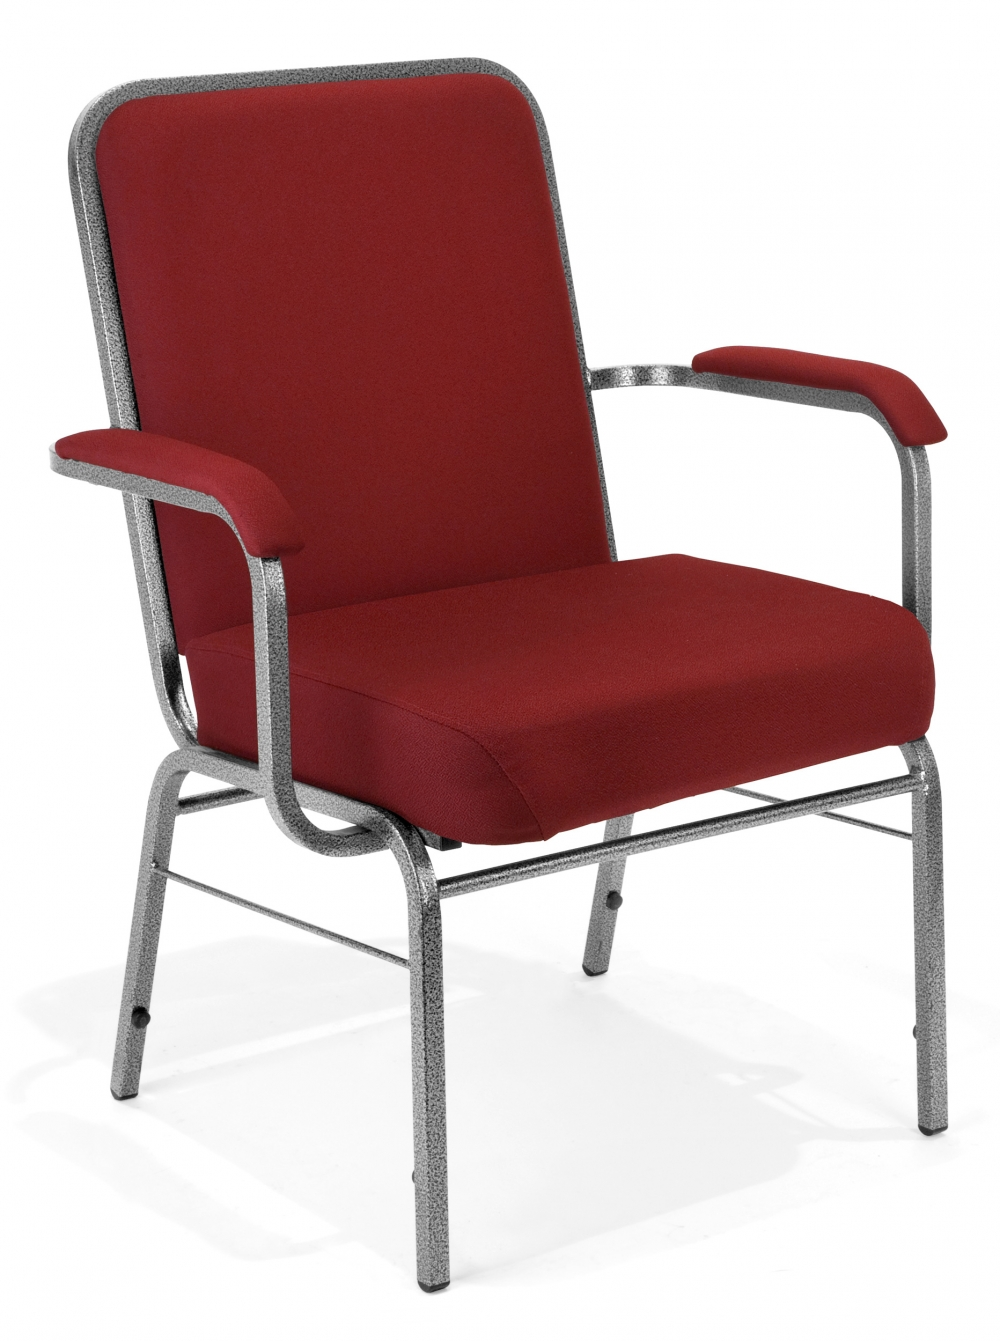 big-and-tall-office-chairs-big-man-office-chair-500-lb.jpg